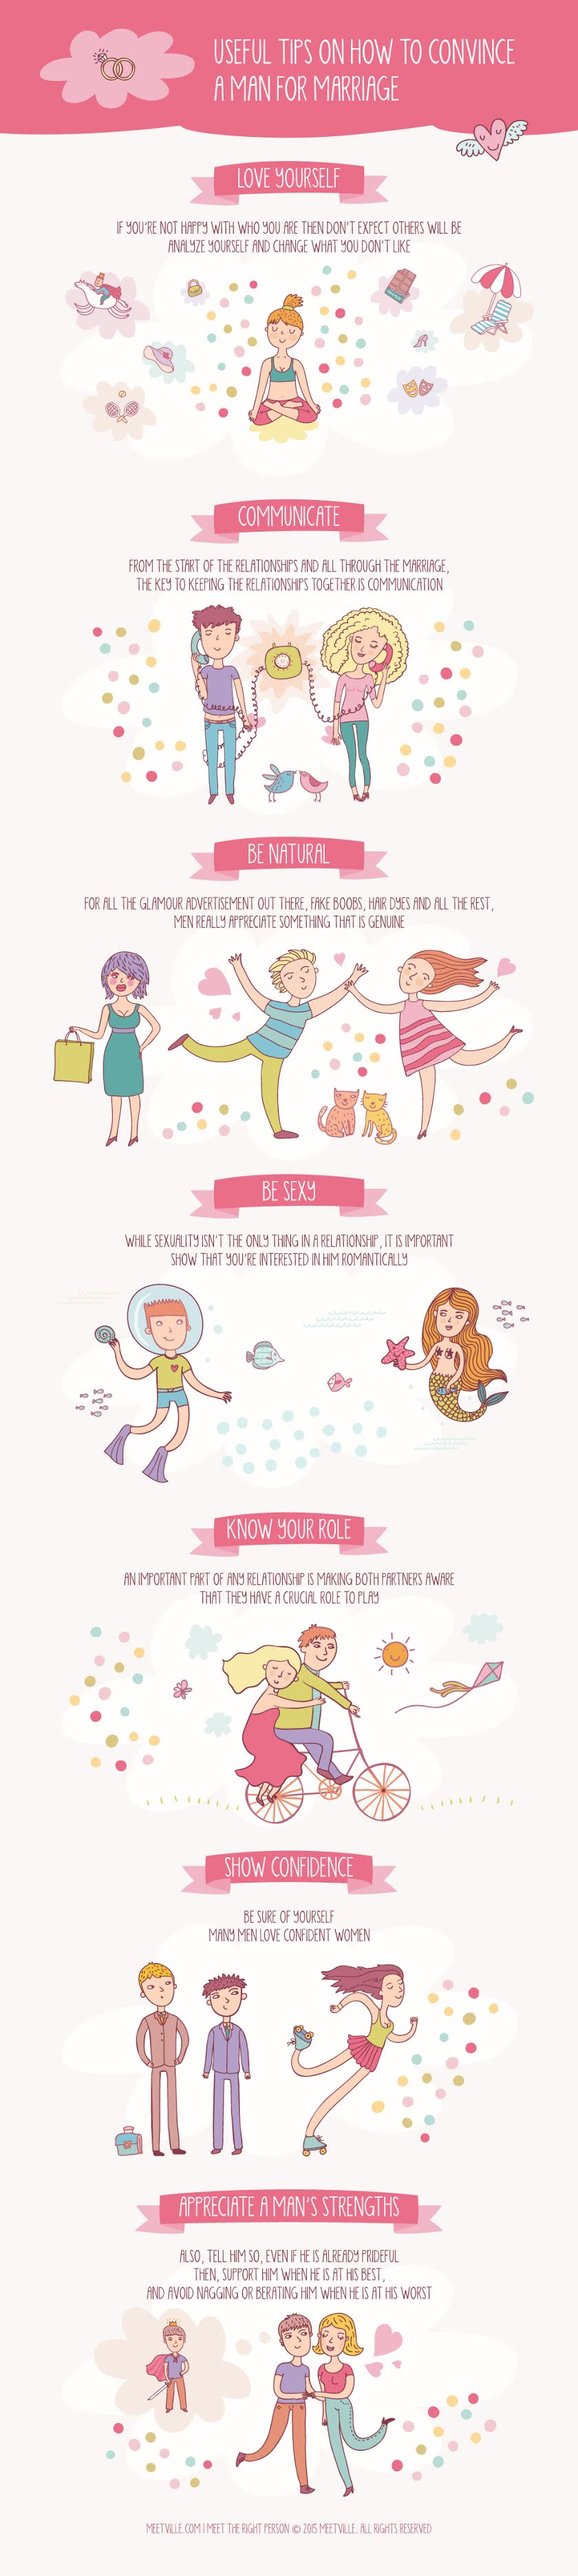 Useful Tips on How to Convince a Man for Marriage #infographic #Marriage #Wedding